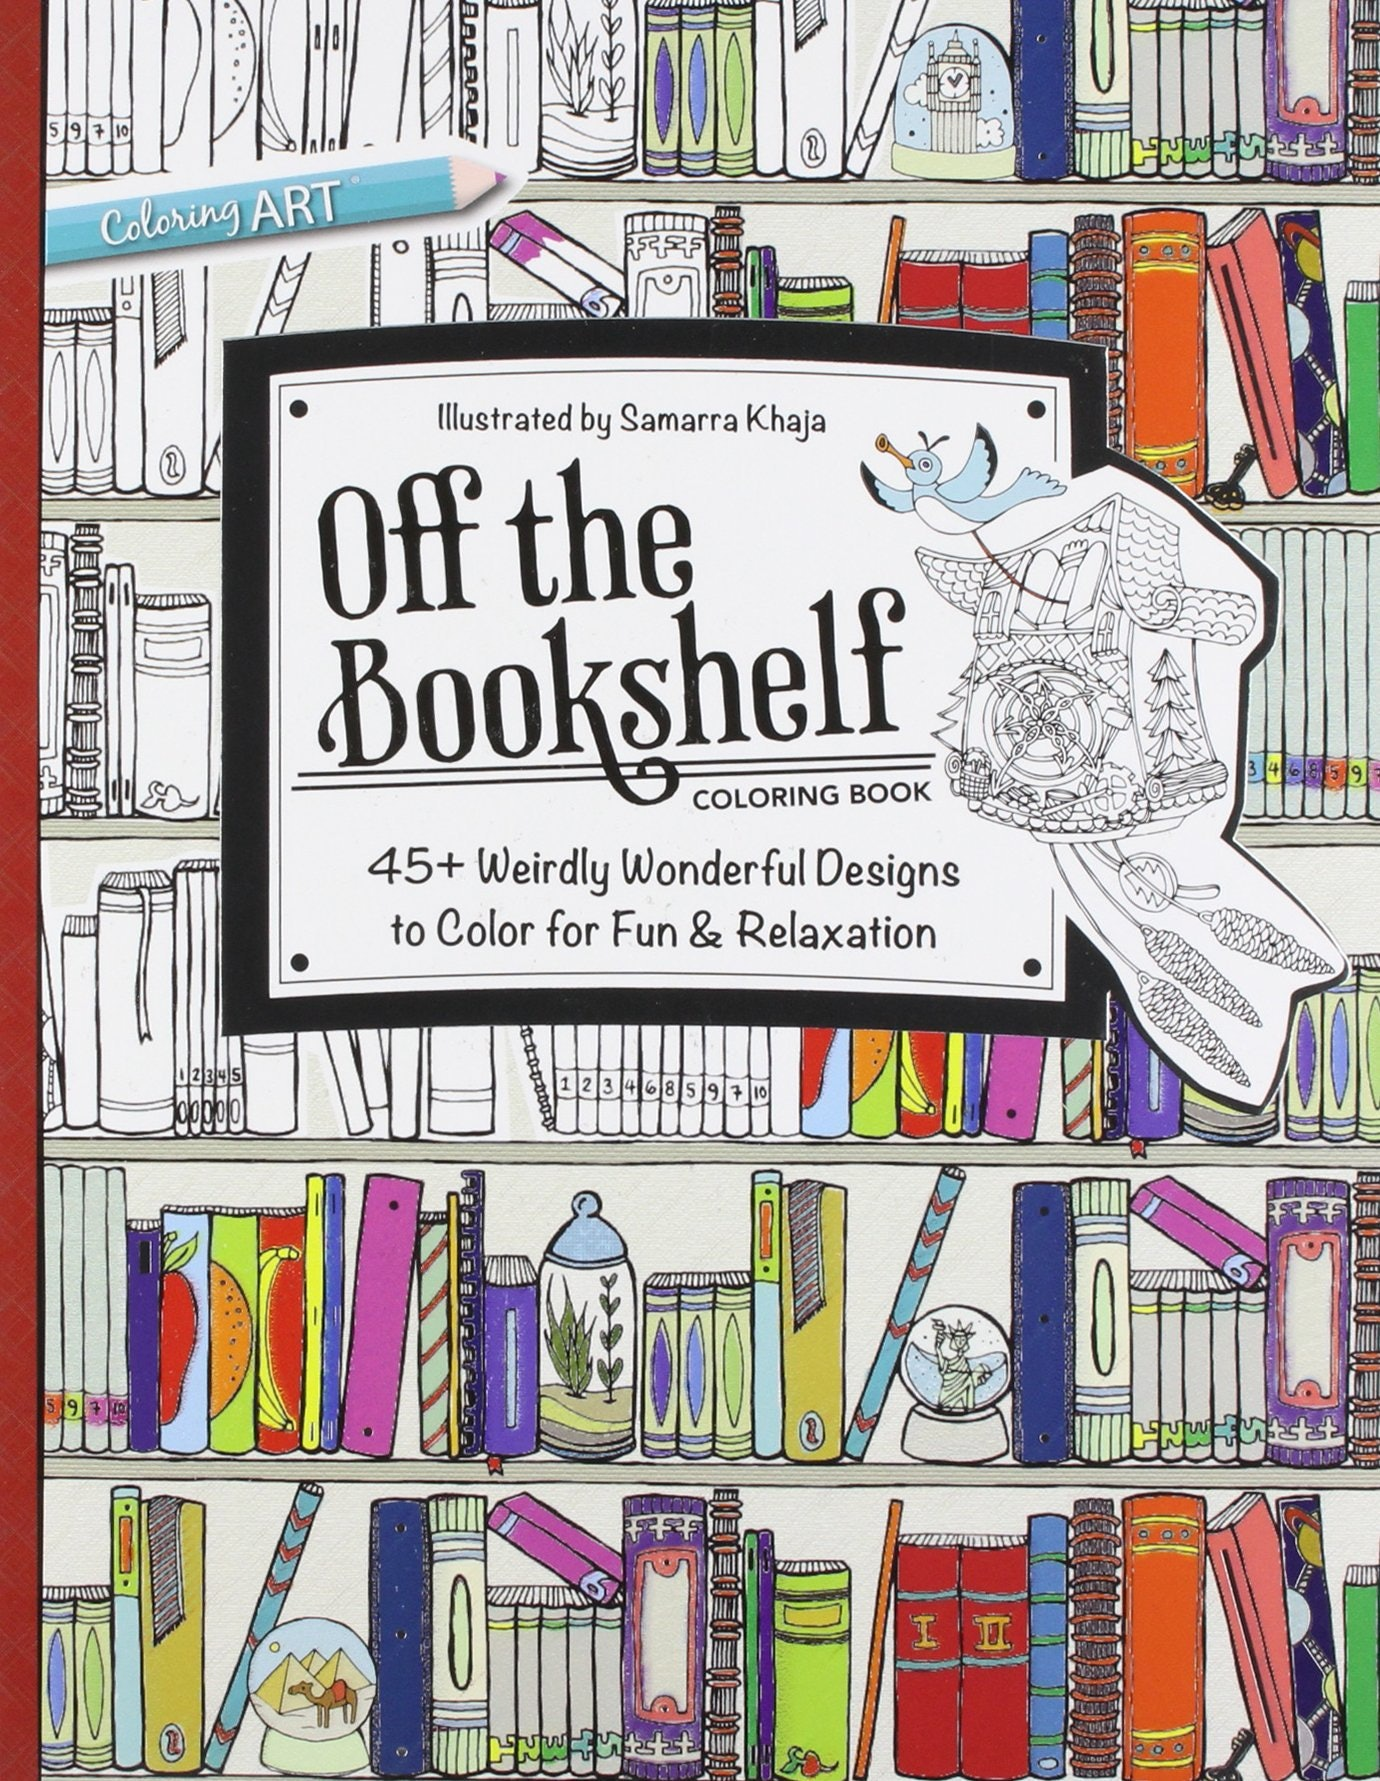 10 Adult Coloring Books Every True Book Lover Needs